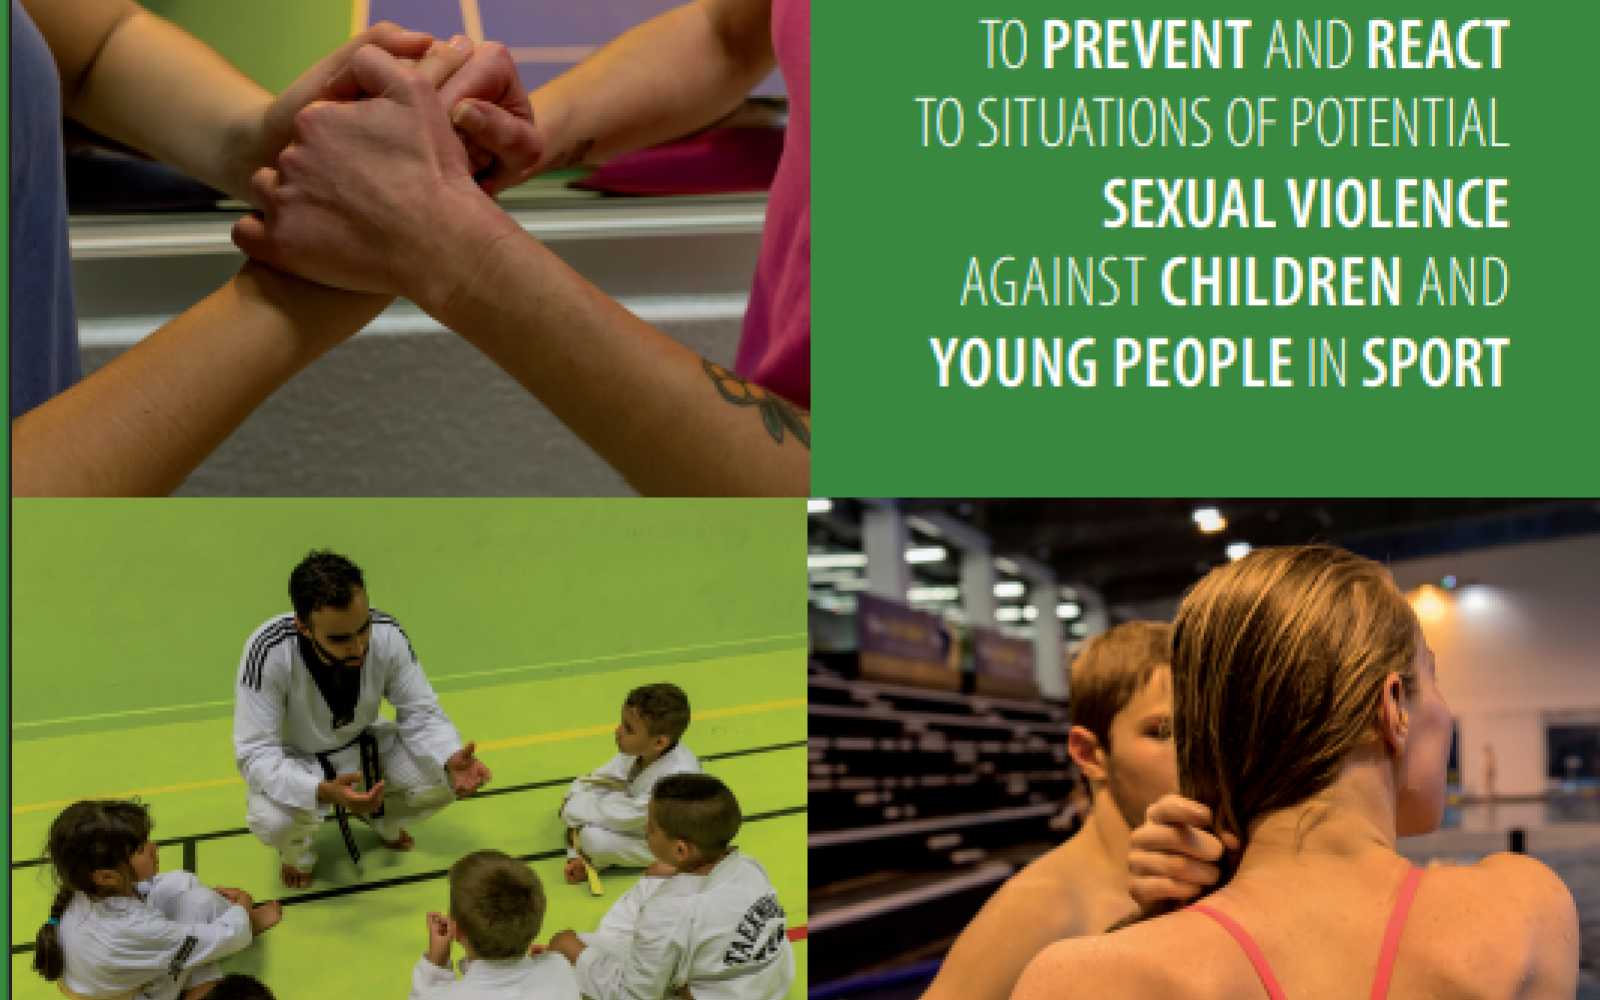 To prevent and react to situations of potential sexual violence against children and young people in sport